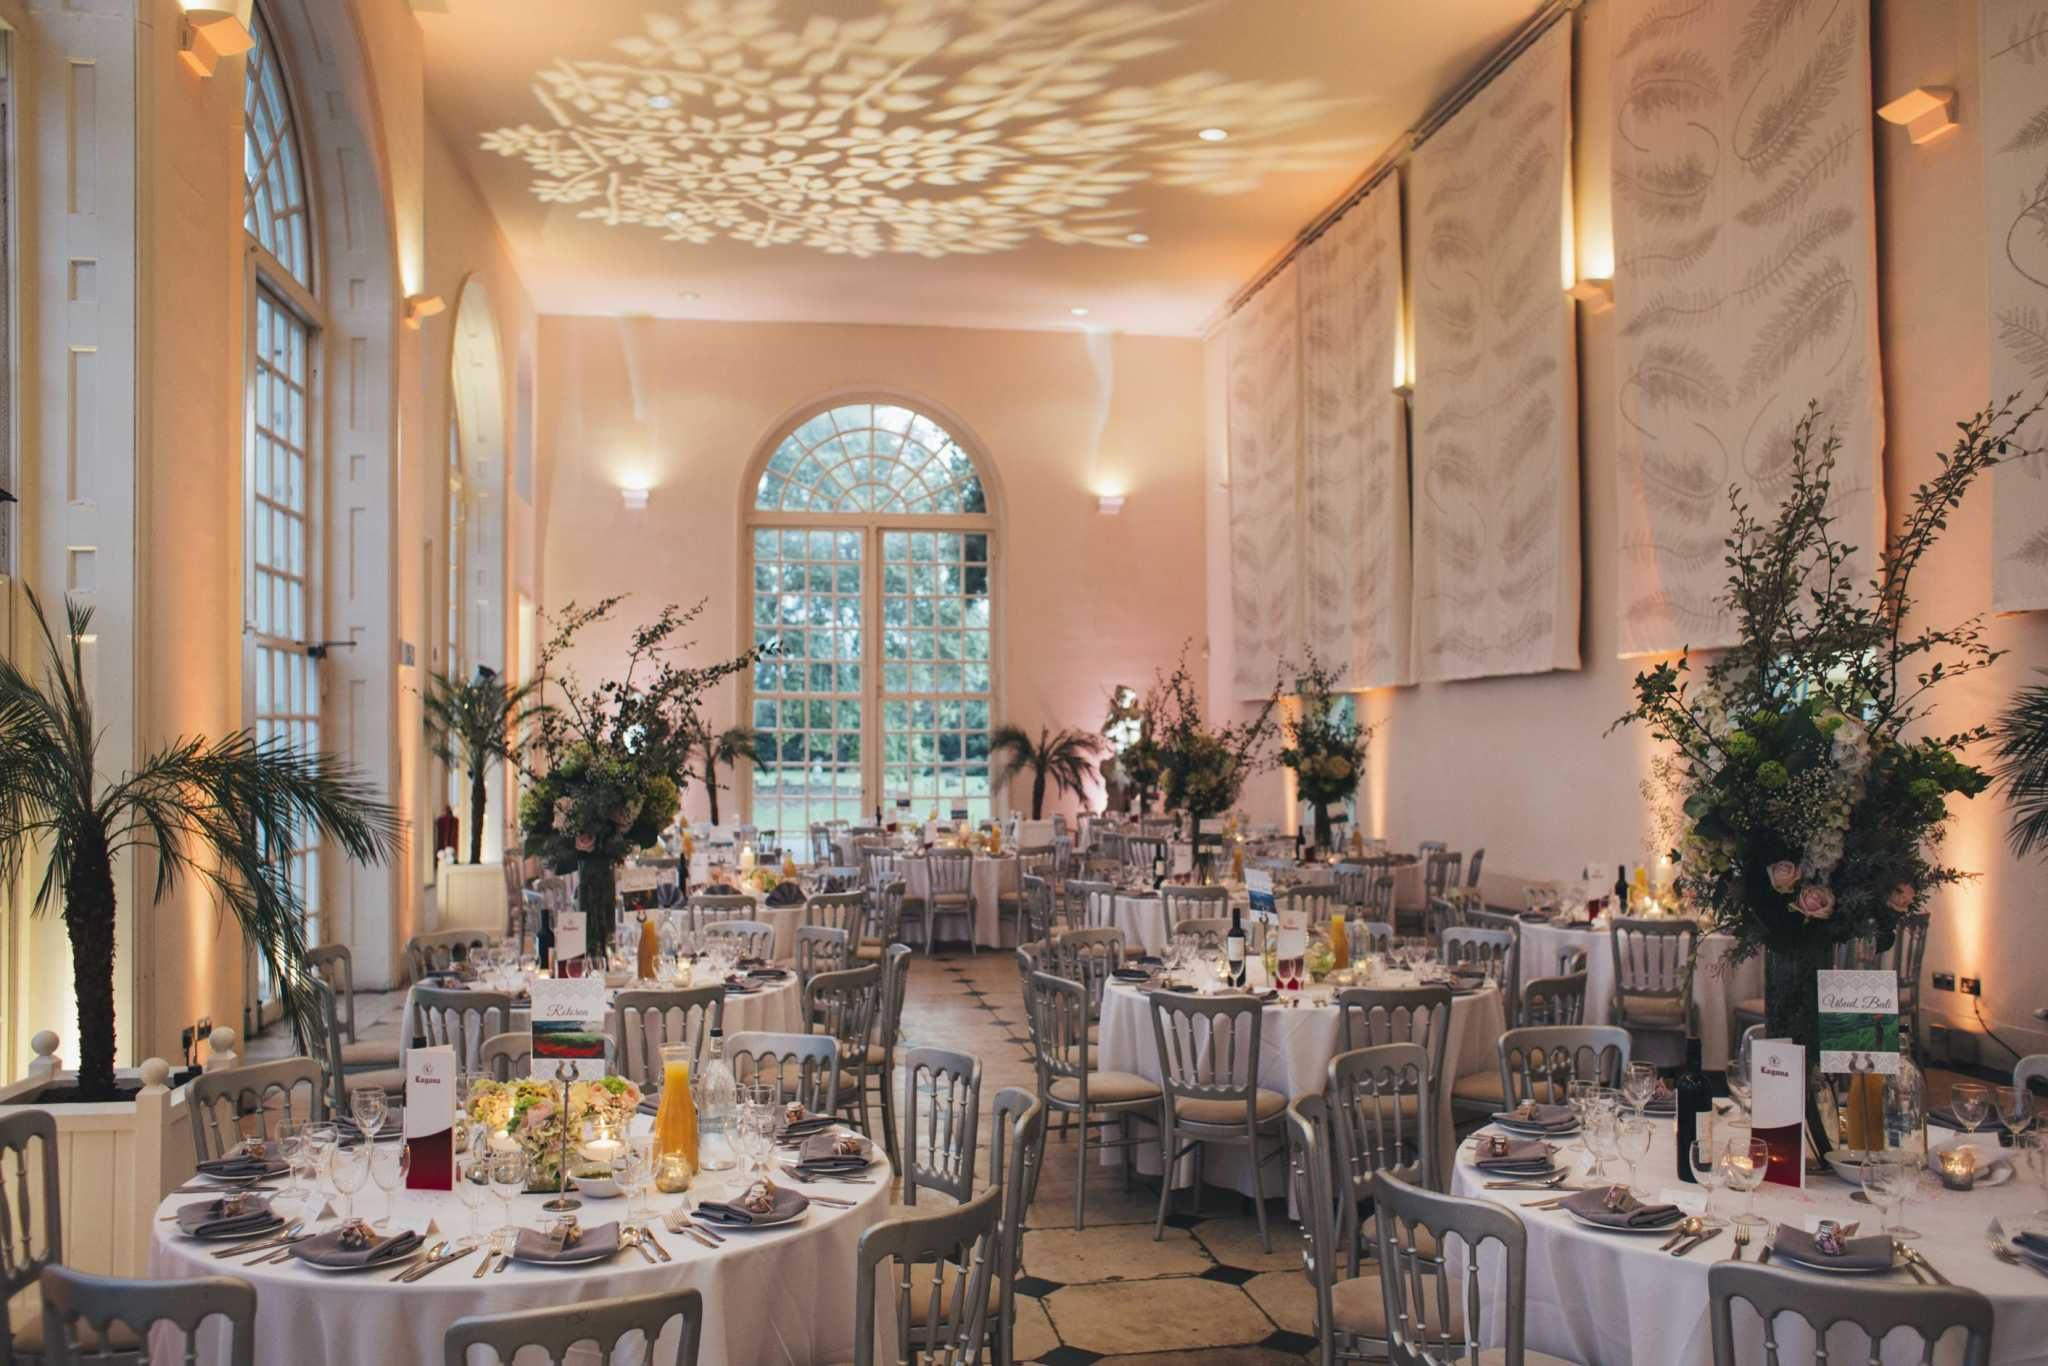 licensed wedding venues in north london%0A The Orangery at Kew Gardens